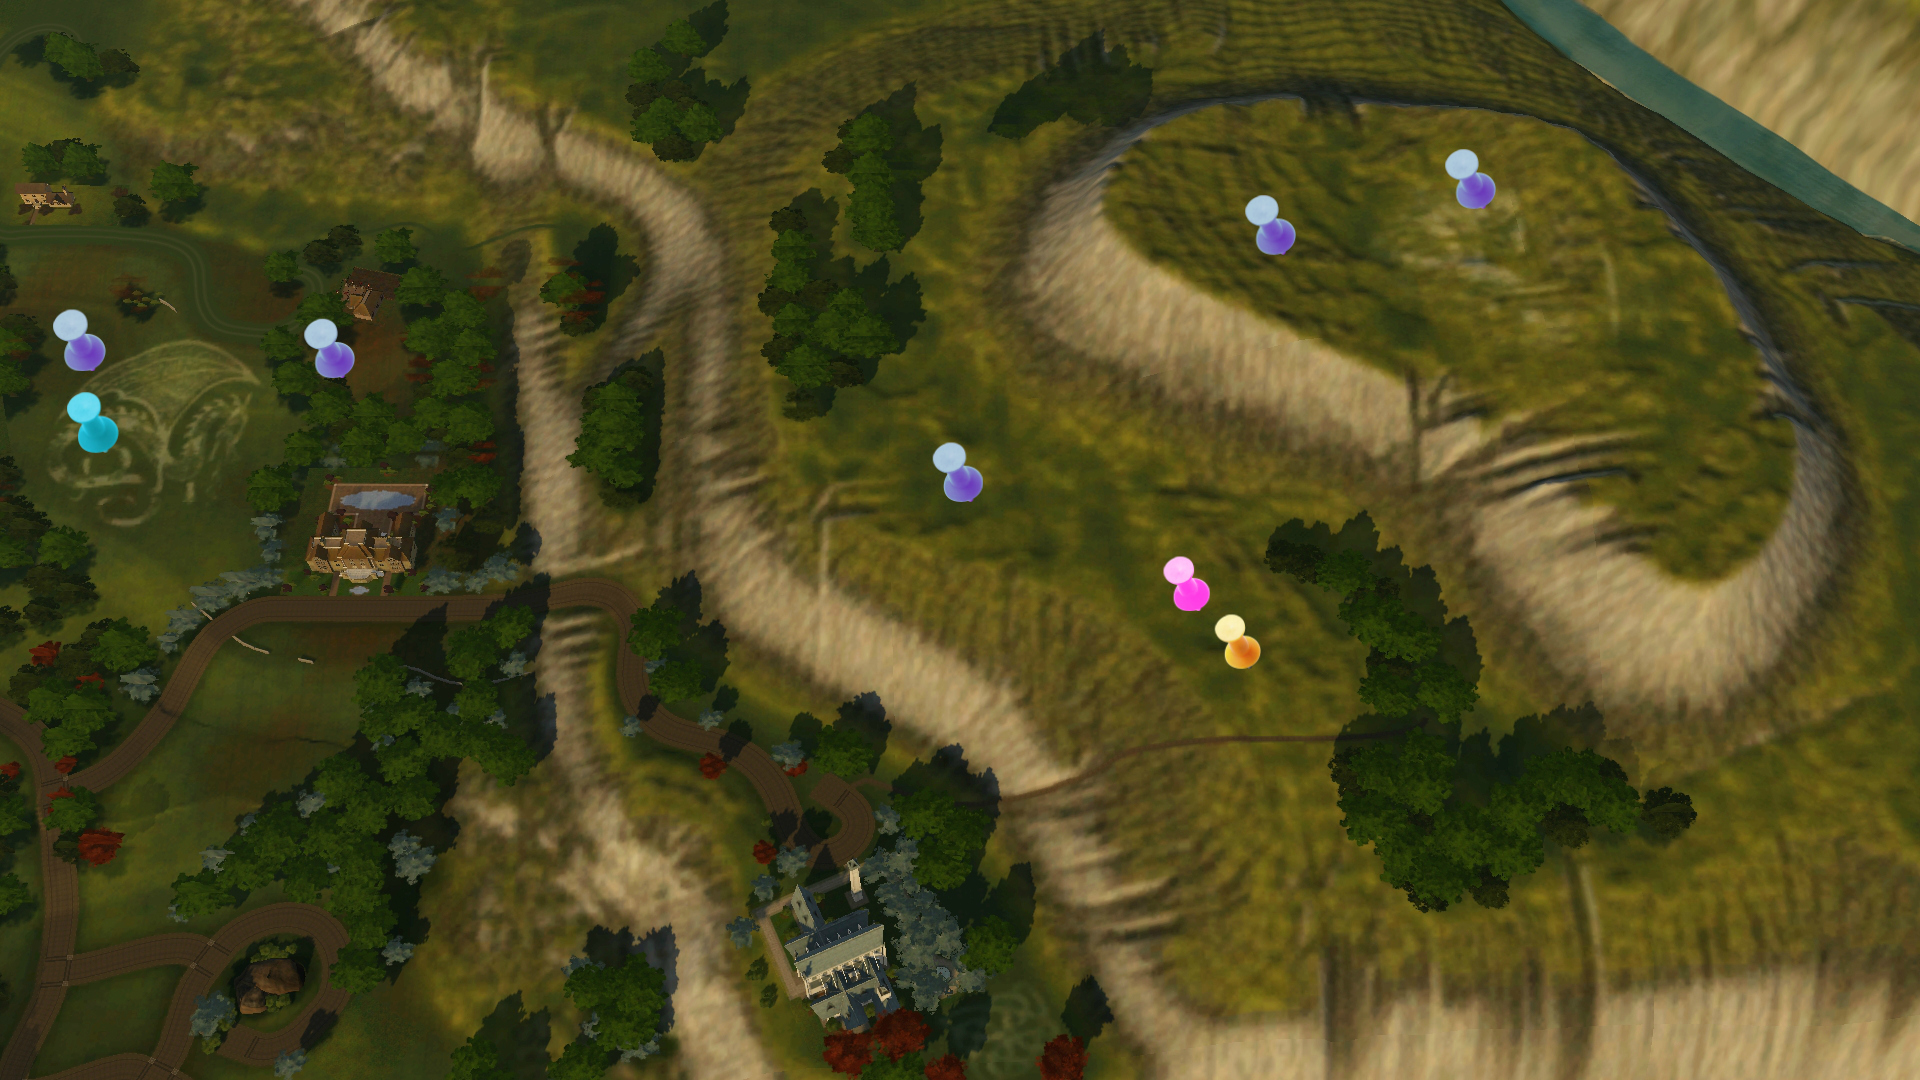 The Sims 3 Dragon Valley World Info Collectibles & Baby Dragons